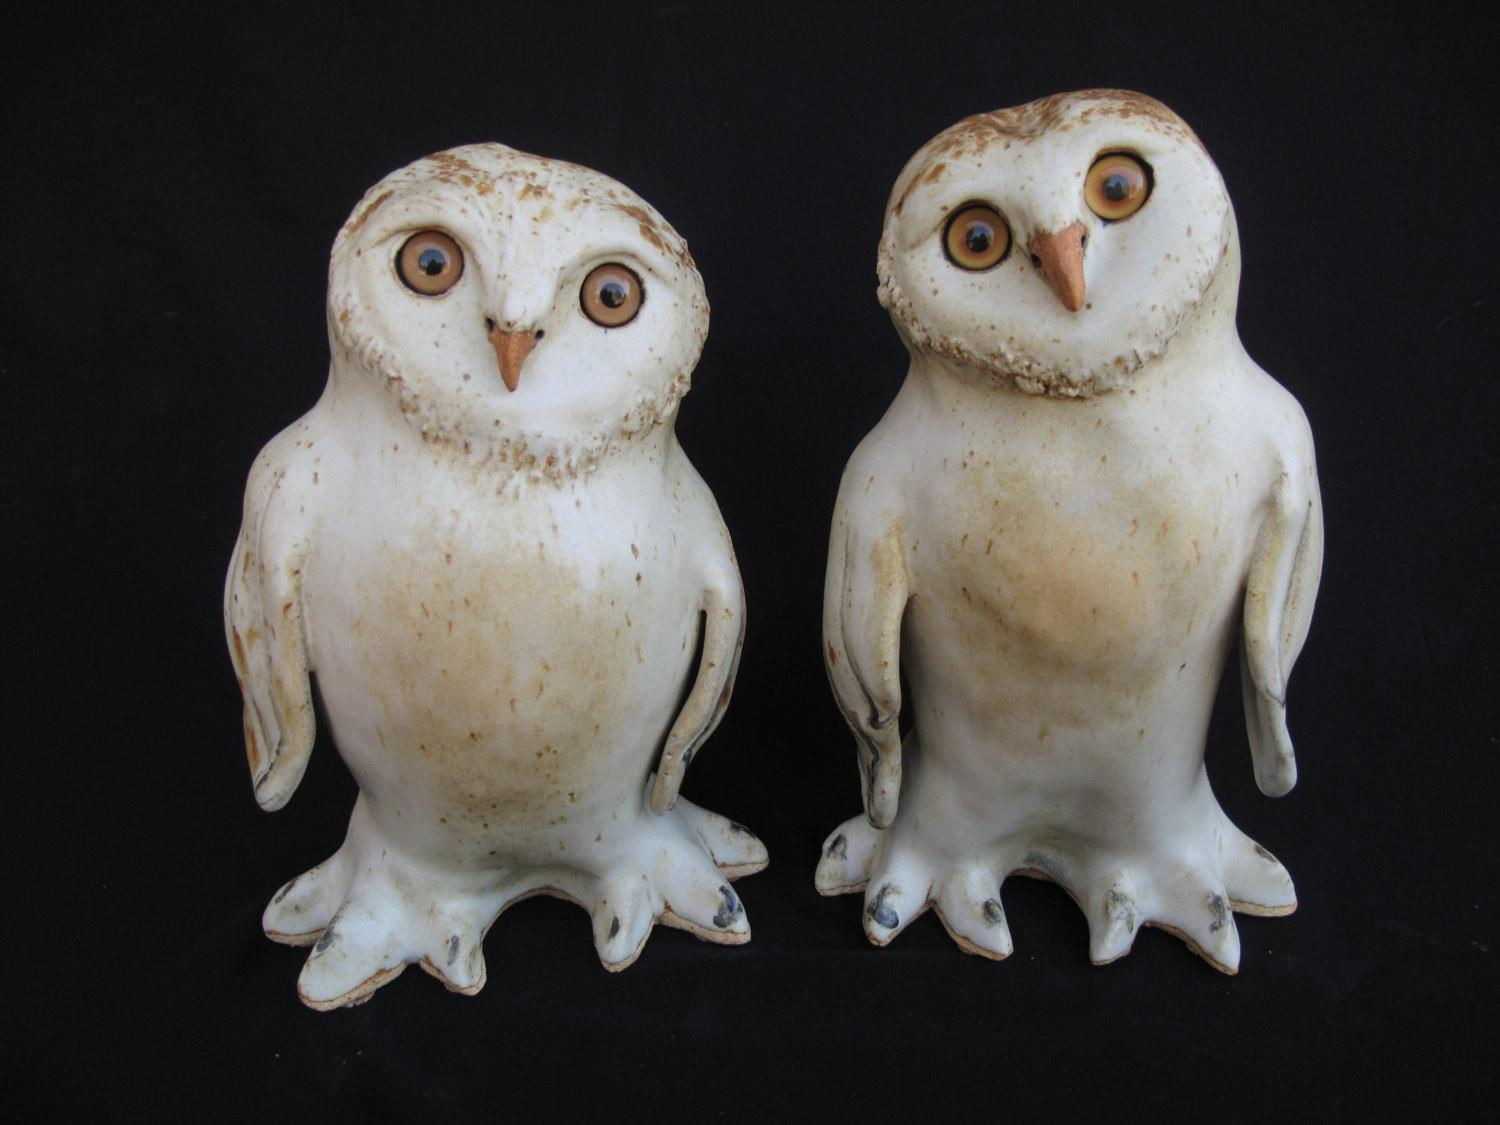 Owl Figurines Snowy Sculptures Clay Owls Home Decor